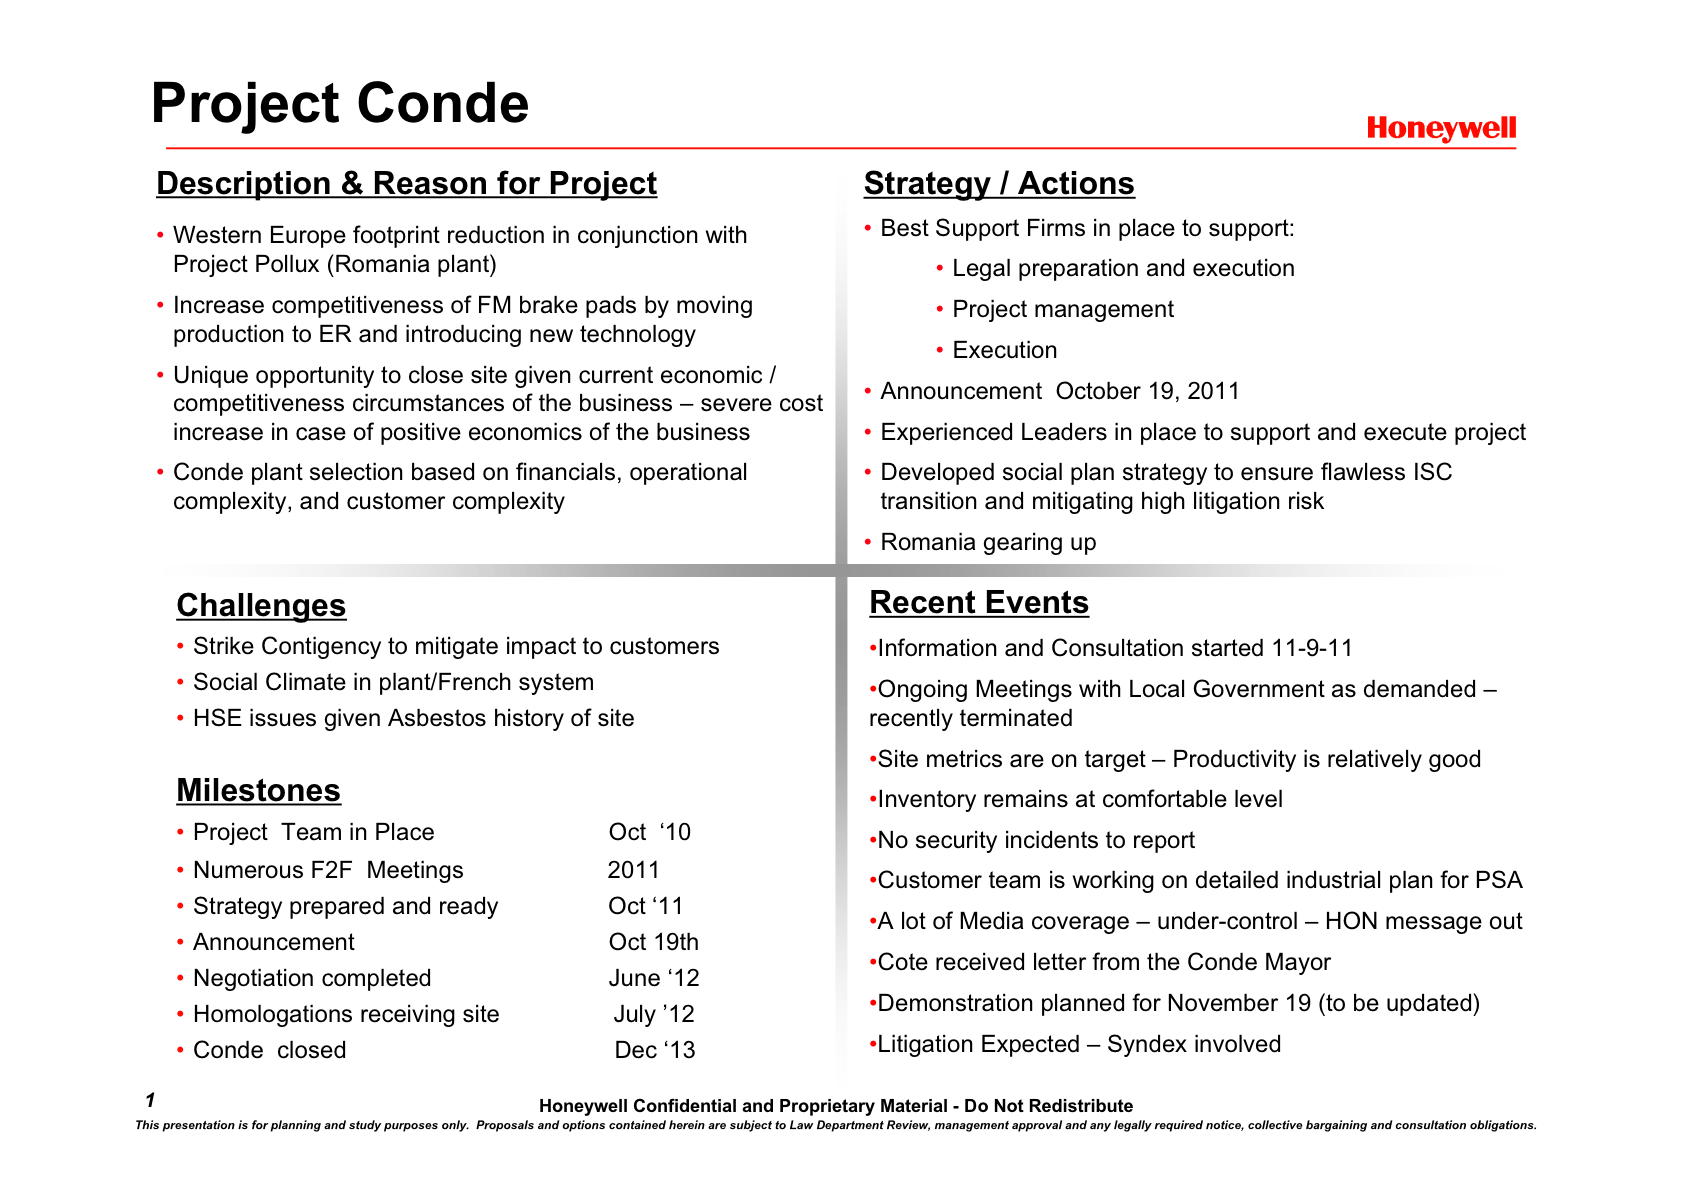 HONEYWELL_CONDE_Project_Kane